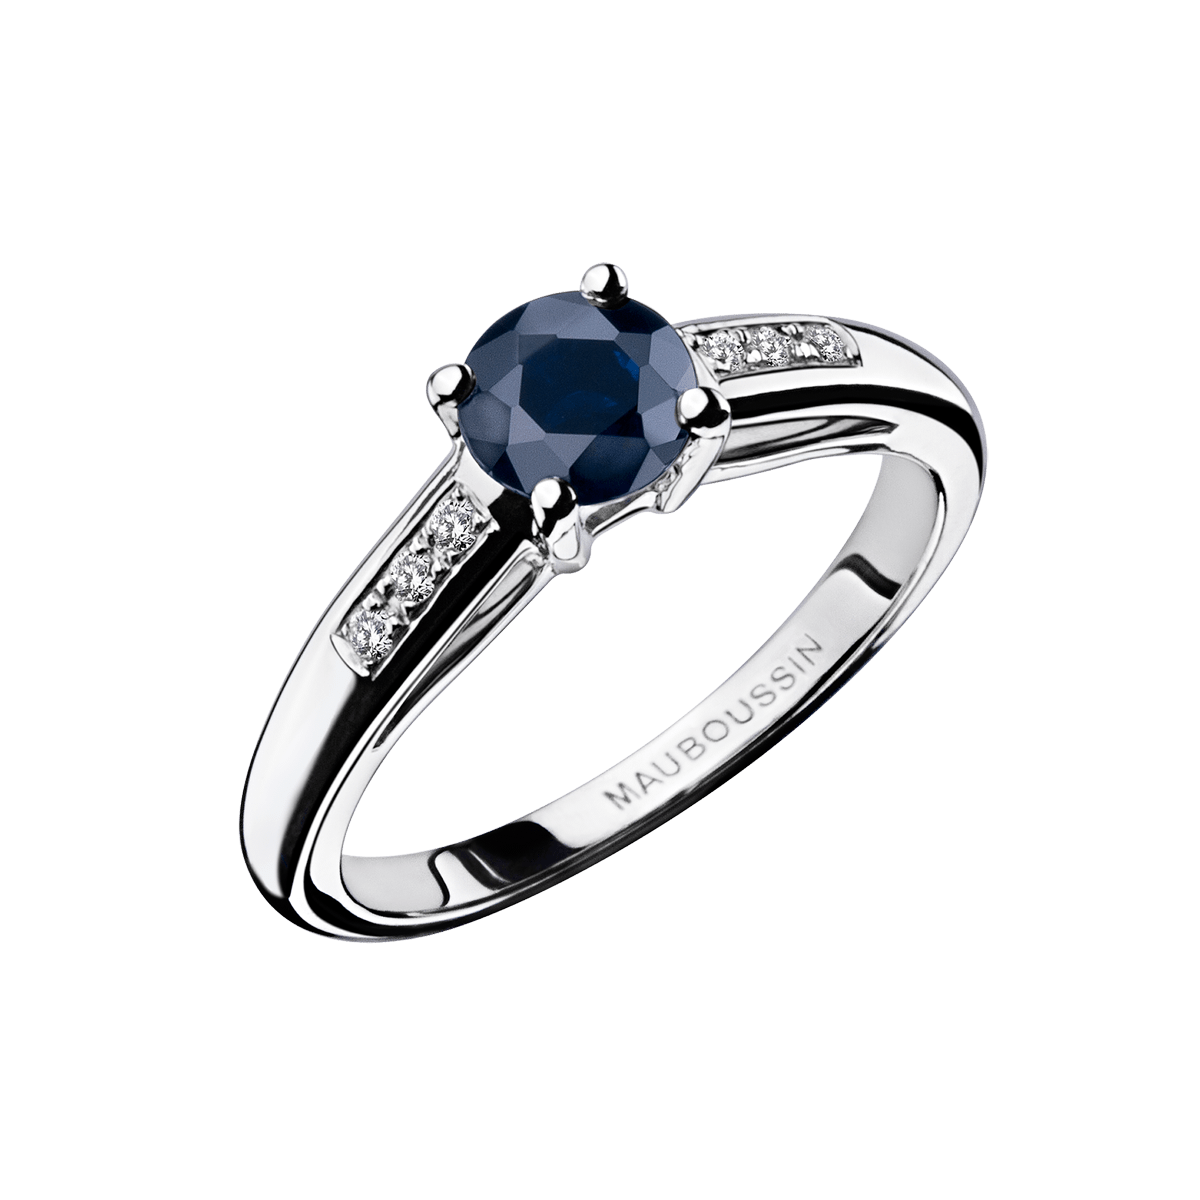 Souvent Bague Grand Mot d'Amour,or blanc, saphir et diamants - Mauboussin EF52